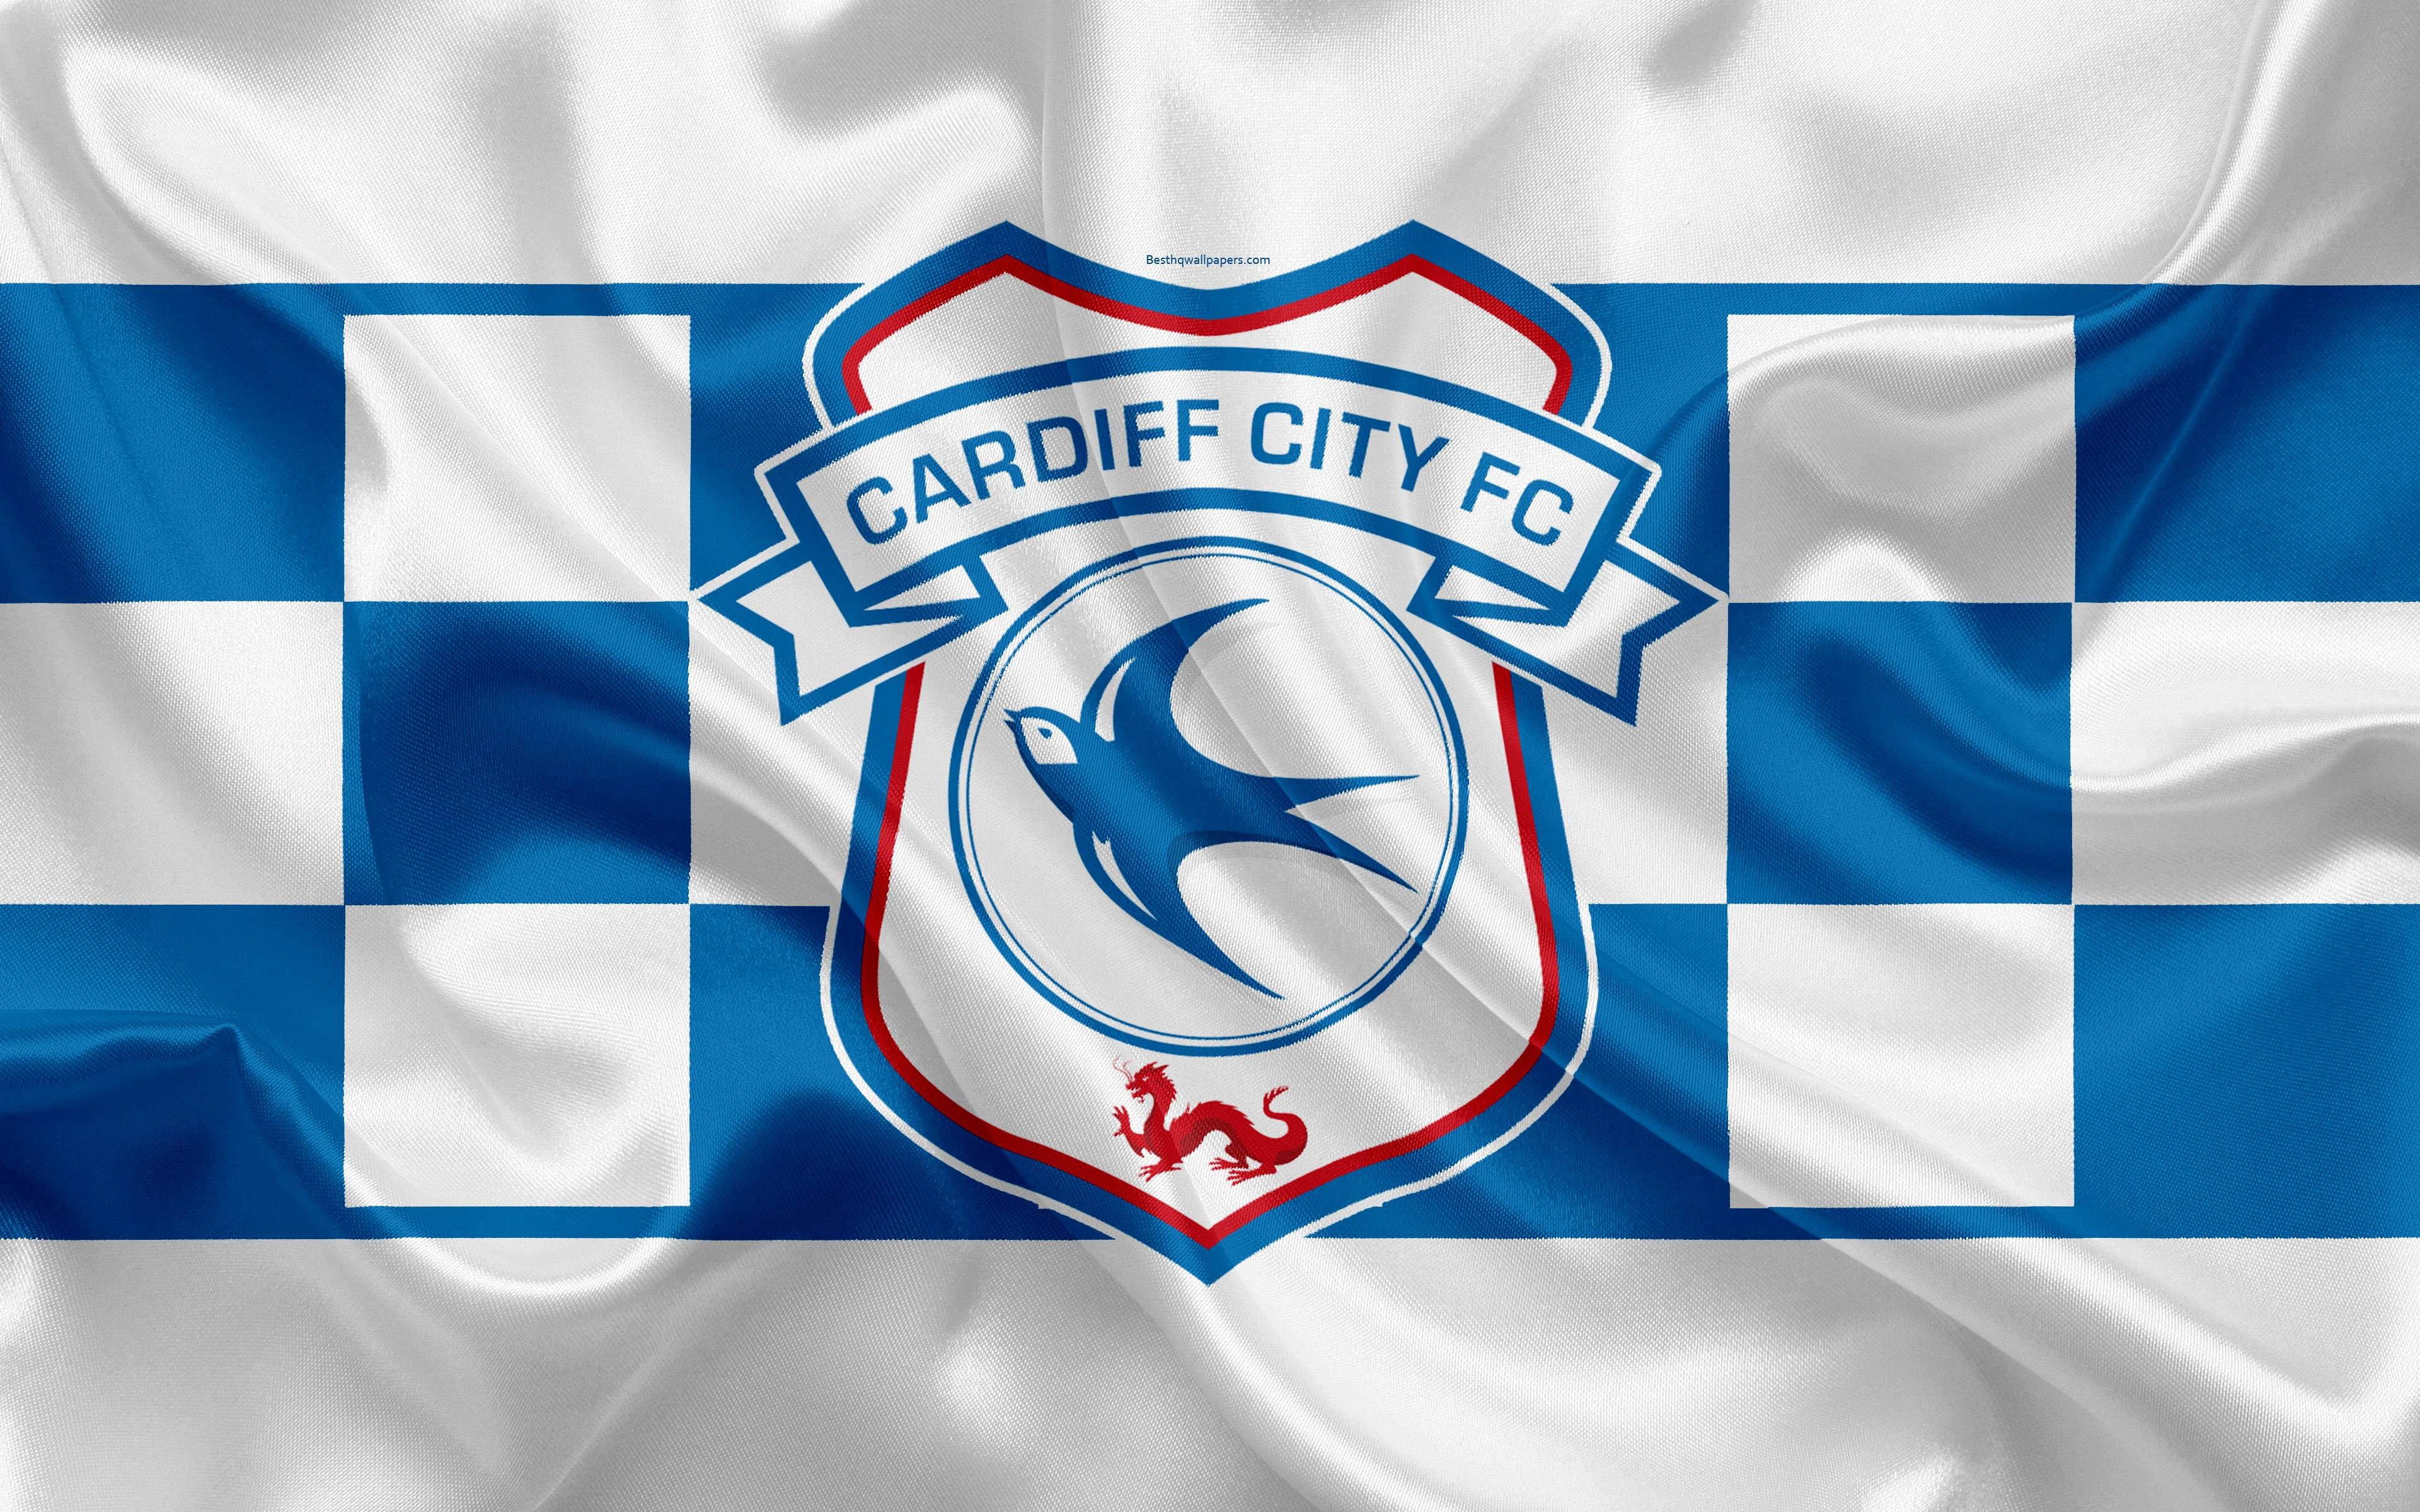 Download wallpapers Cardiff City FC, silk flag, emblem, logo, 4k ...